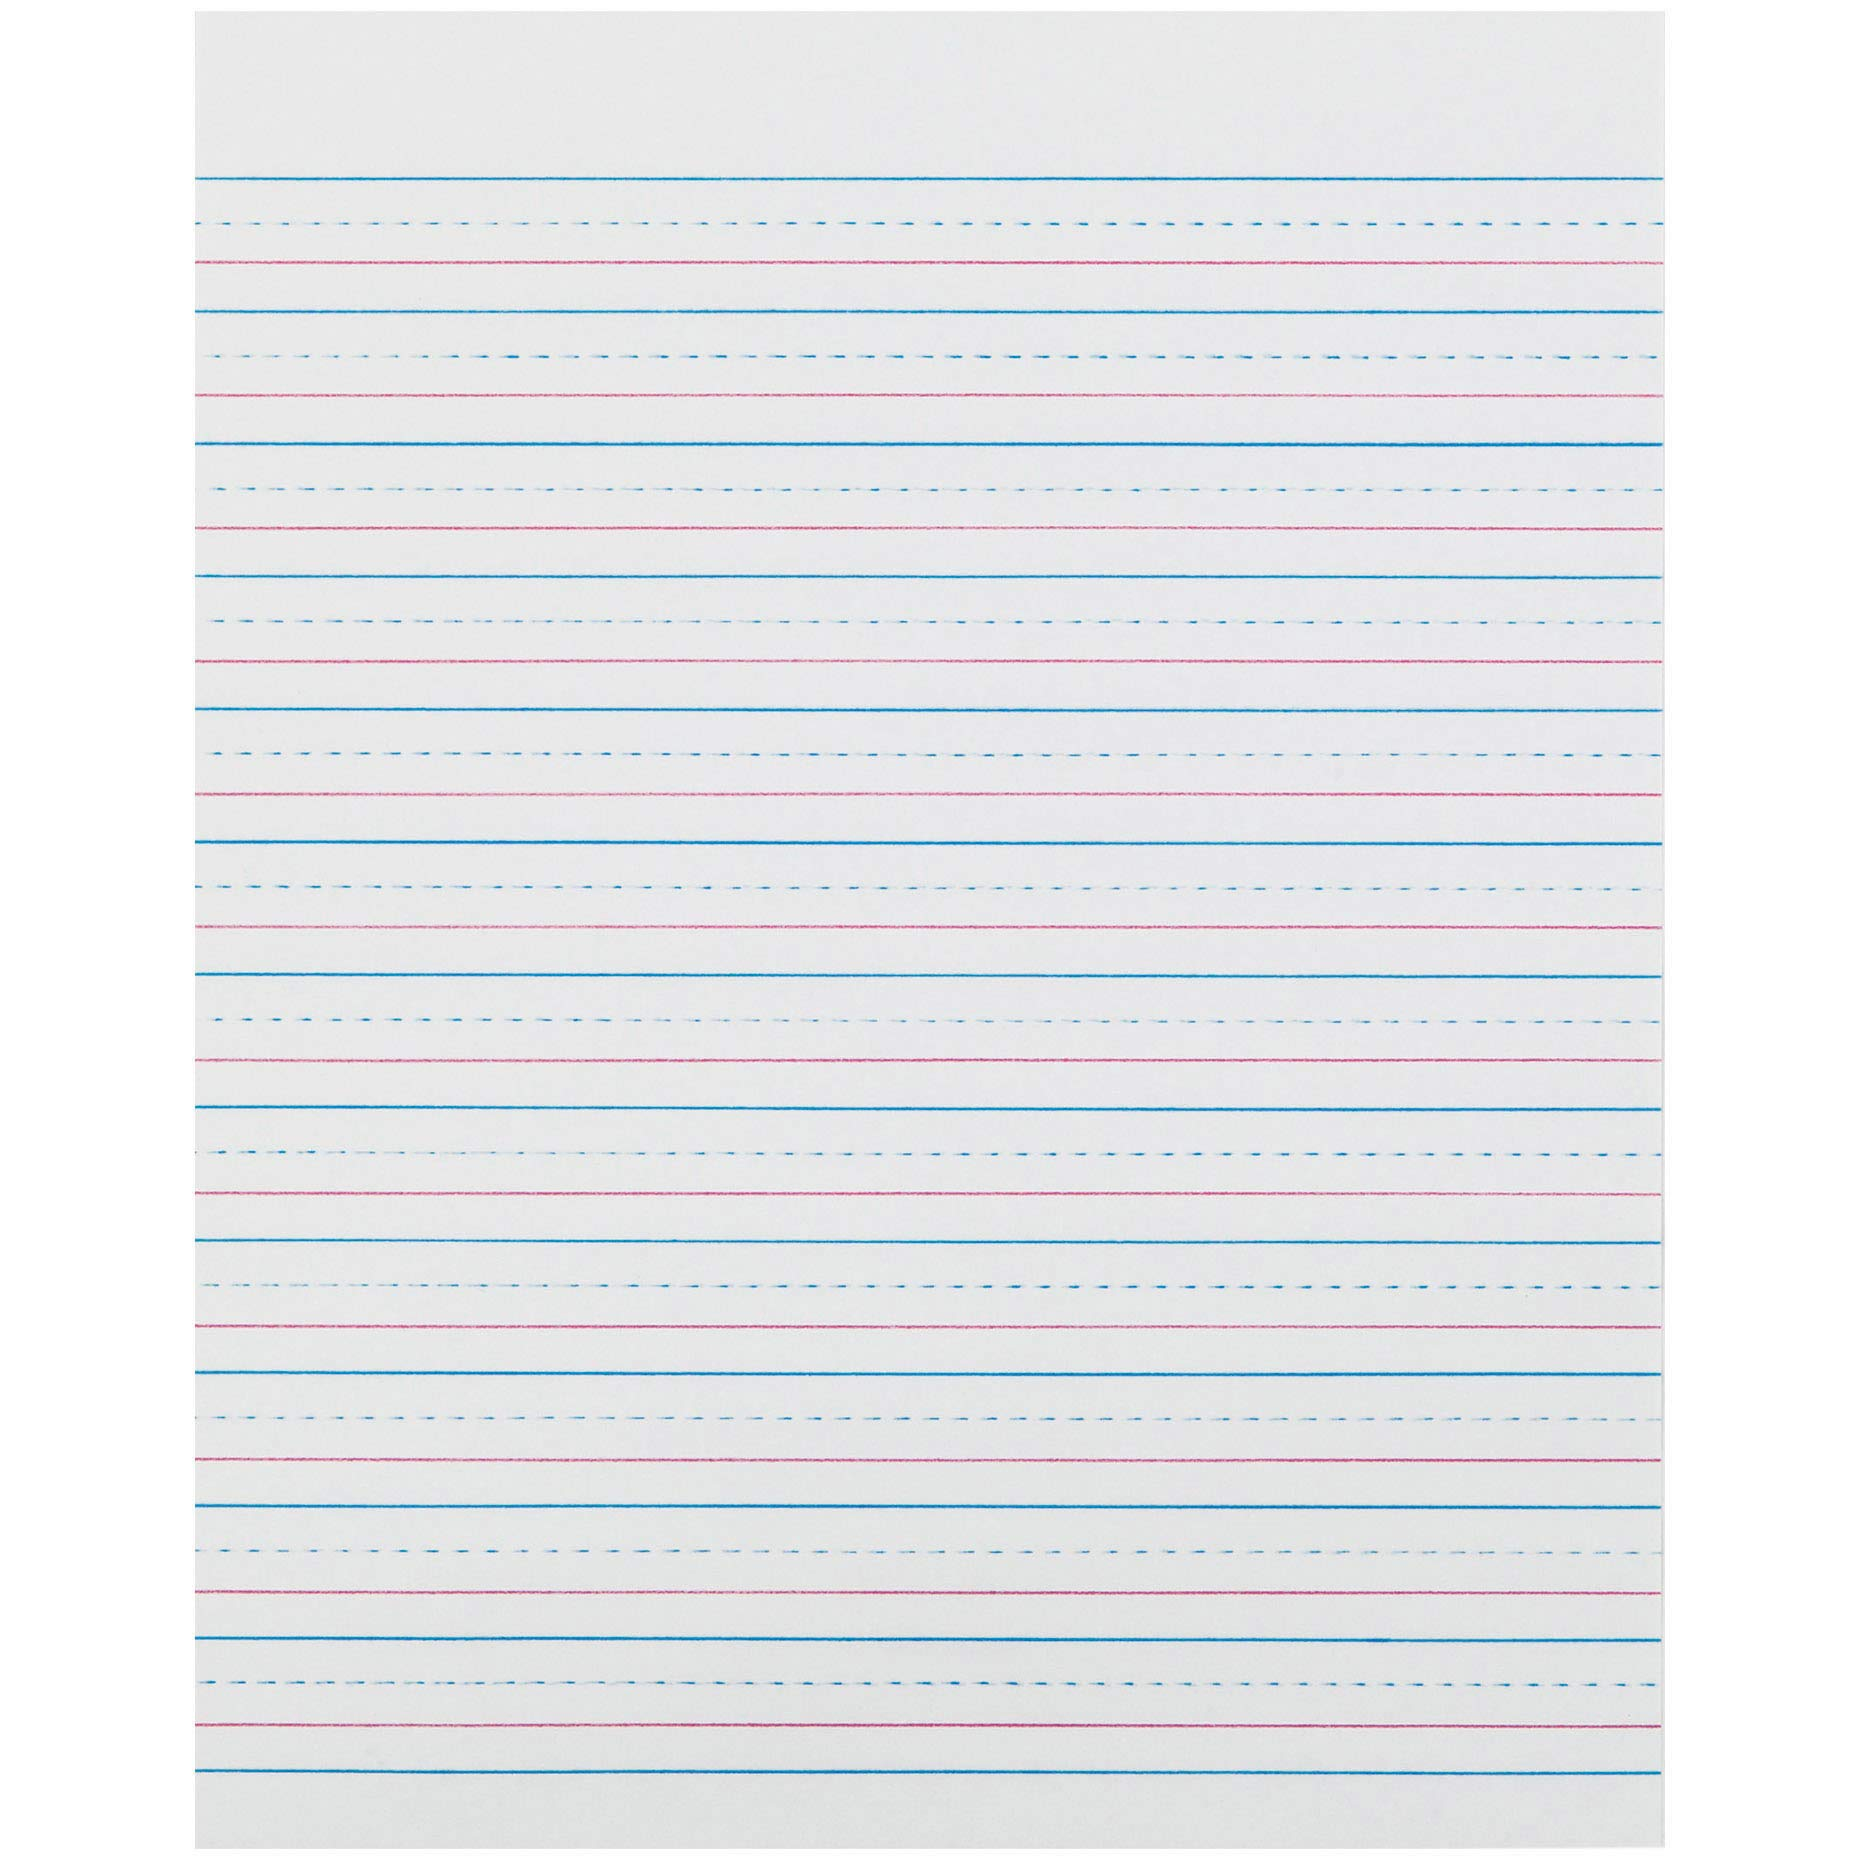 Pacon PACZP2413 Zaner-Bloser Sulphite Handwriting Paper, Dotted Midline, Grade 2, 1/2'' x 1/4'' x 1/4'' Ruled Short, 8'' x 10-1/2'', 500 Sheets by Pacon